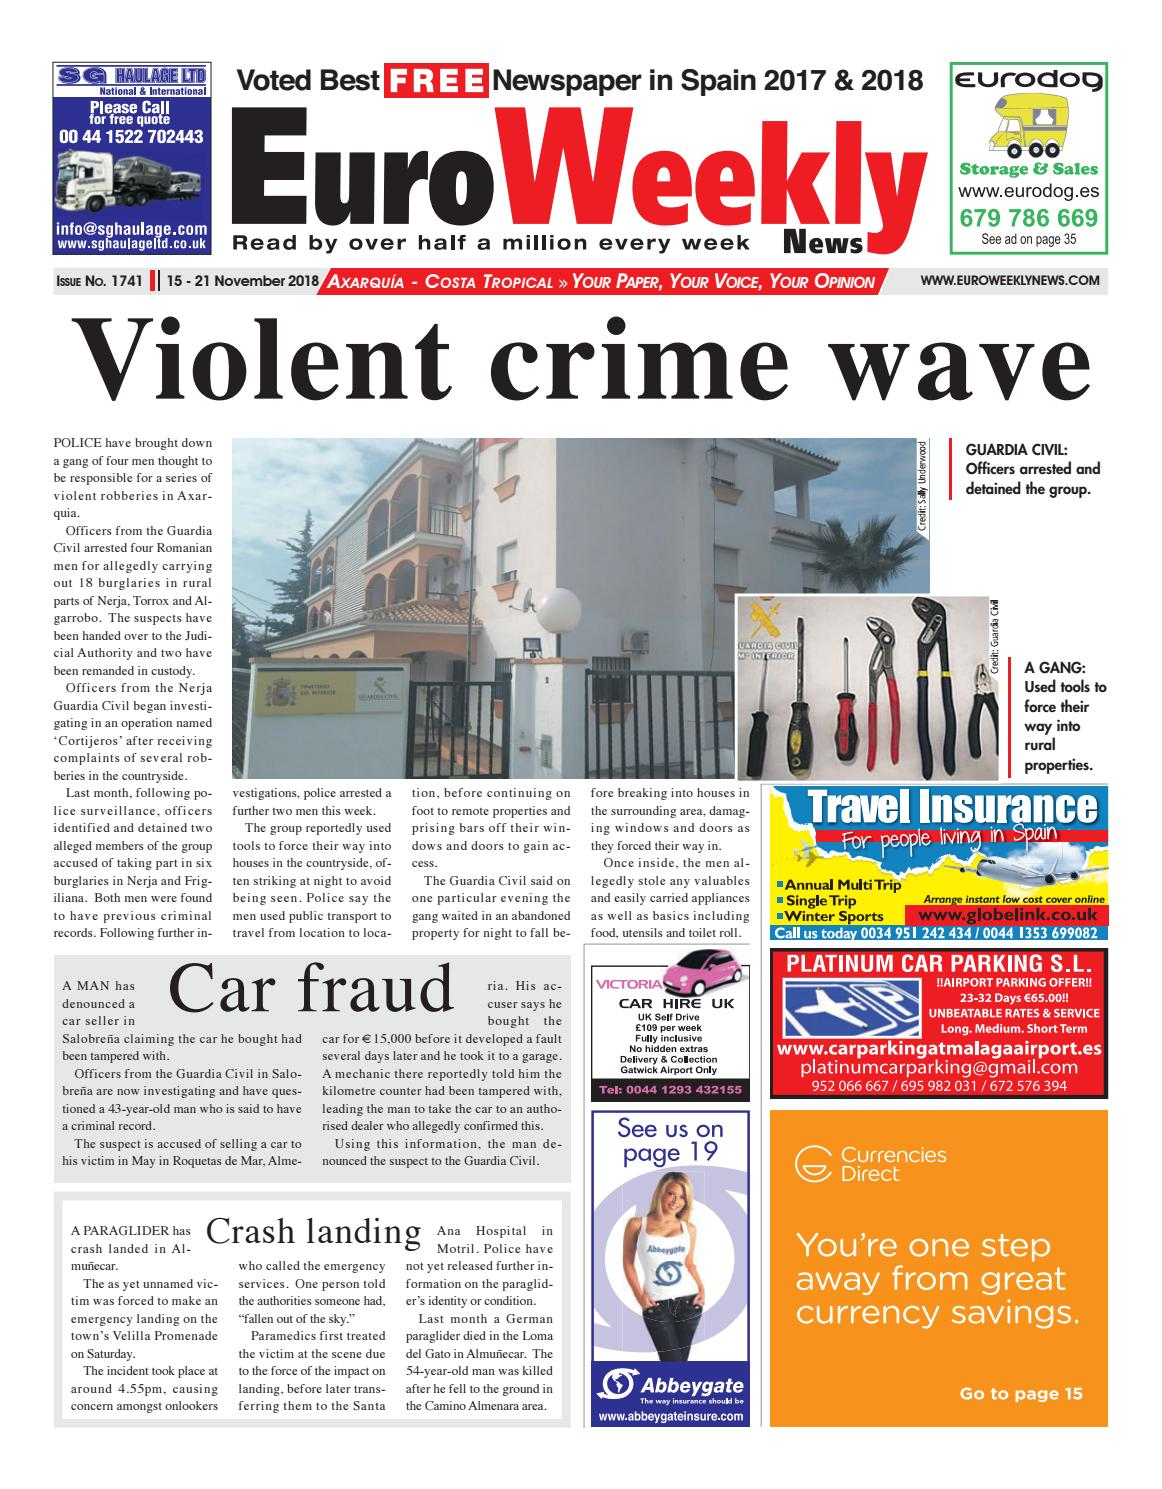 Euro Weekly News Axarquia 15 21 November 2018 Issue 1741 By An Electric Toothbrush Out Of A Vibrator Hacks Mods Circuitry Media Sa Issuu